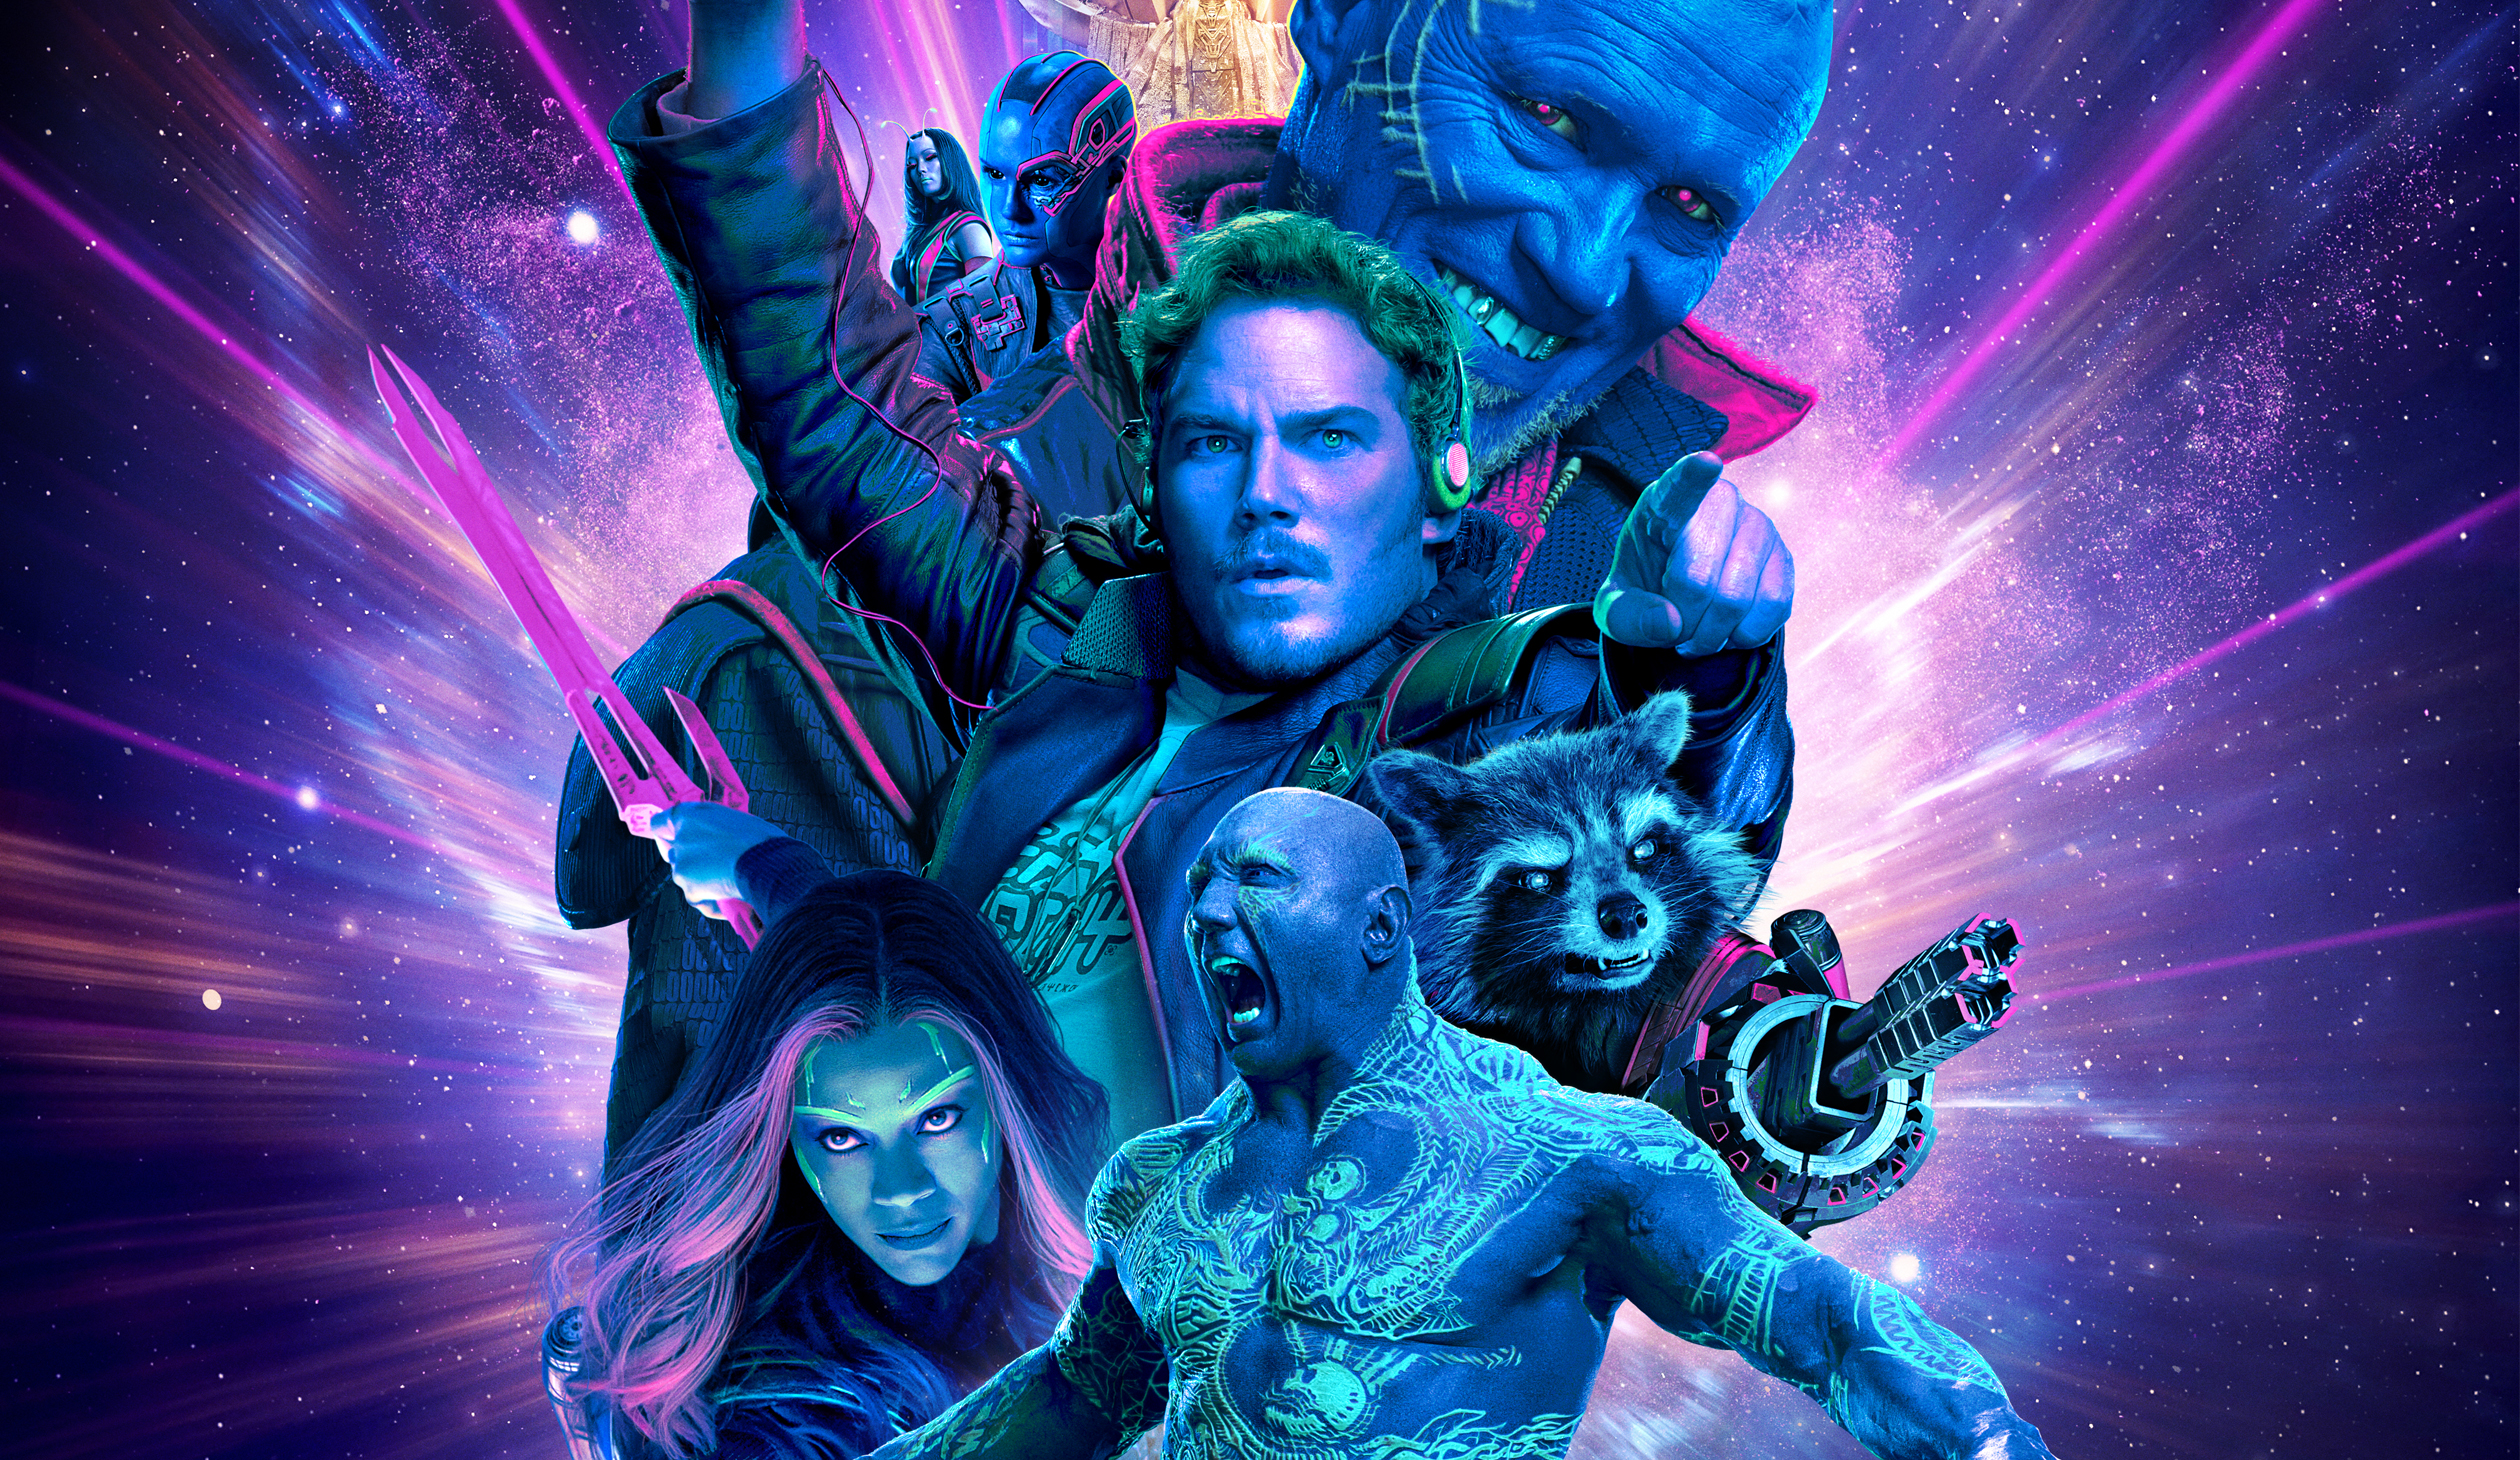 guardians of the galaxy vol 2 nearby showtimes tickets imax